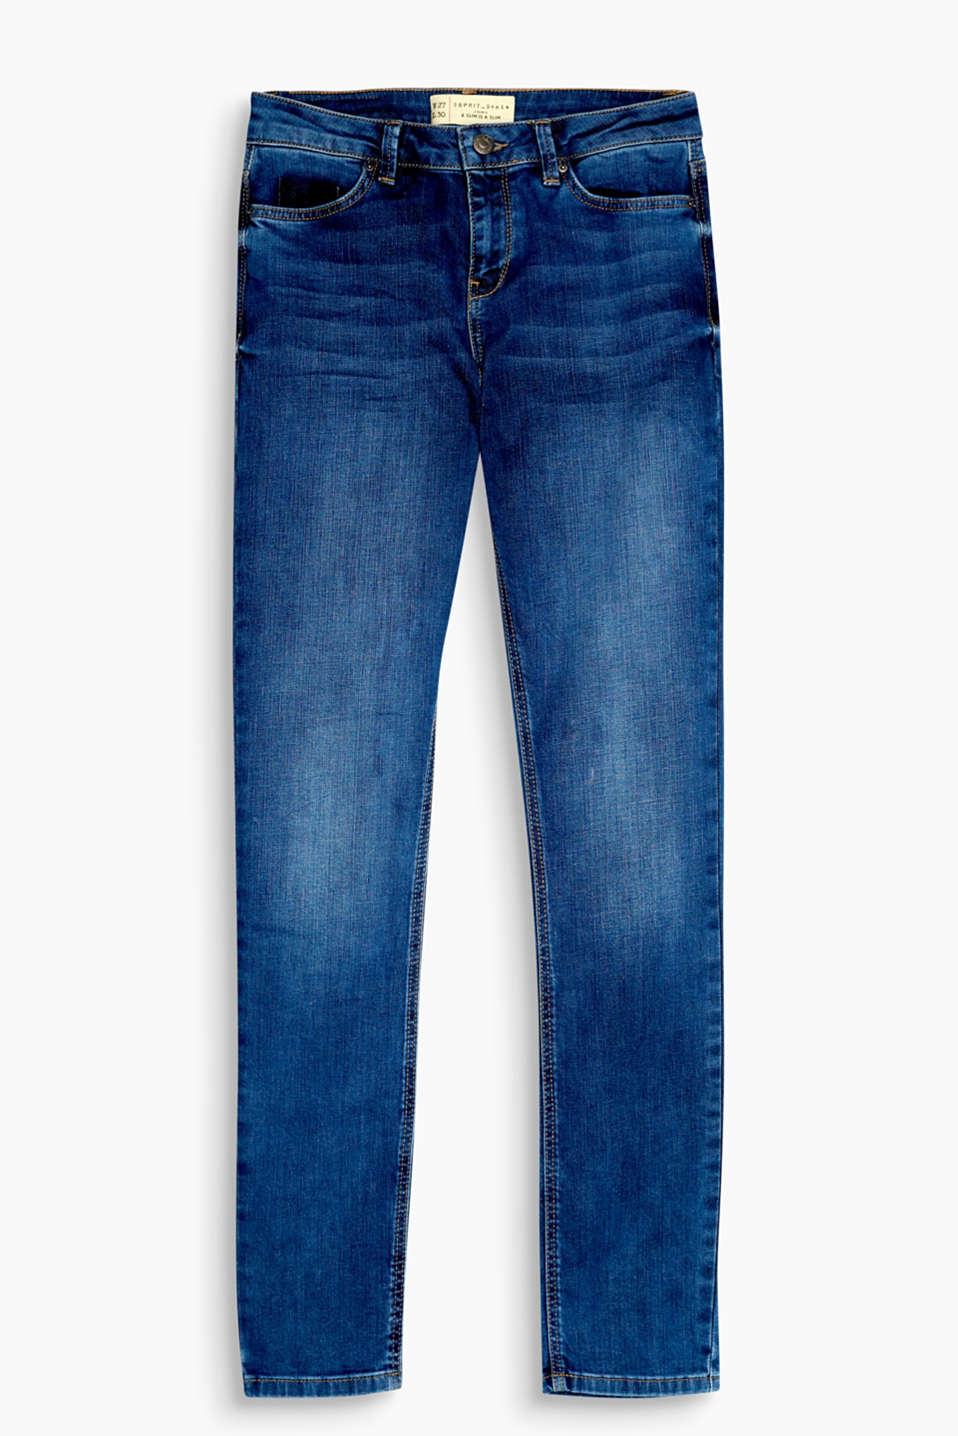 Dark jeans in cotton denim with added stretch for comfort and an authentic garment-washed finish